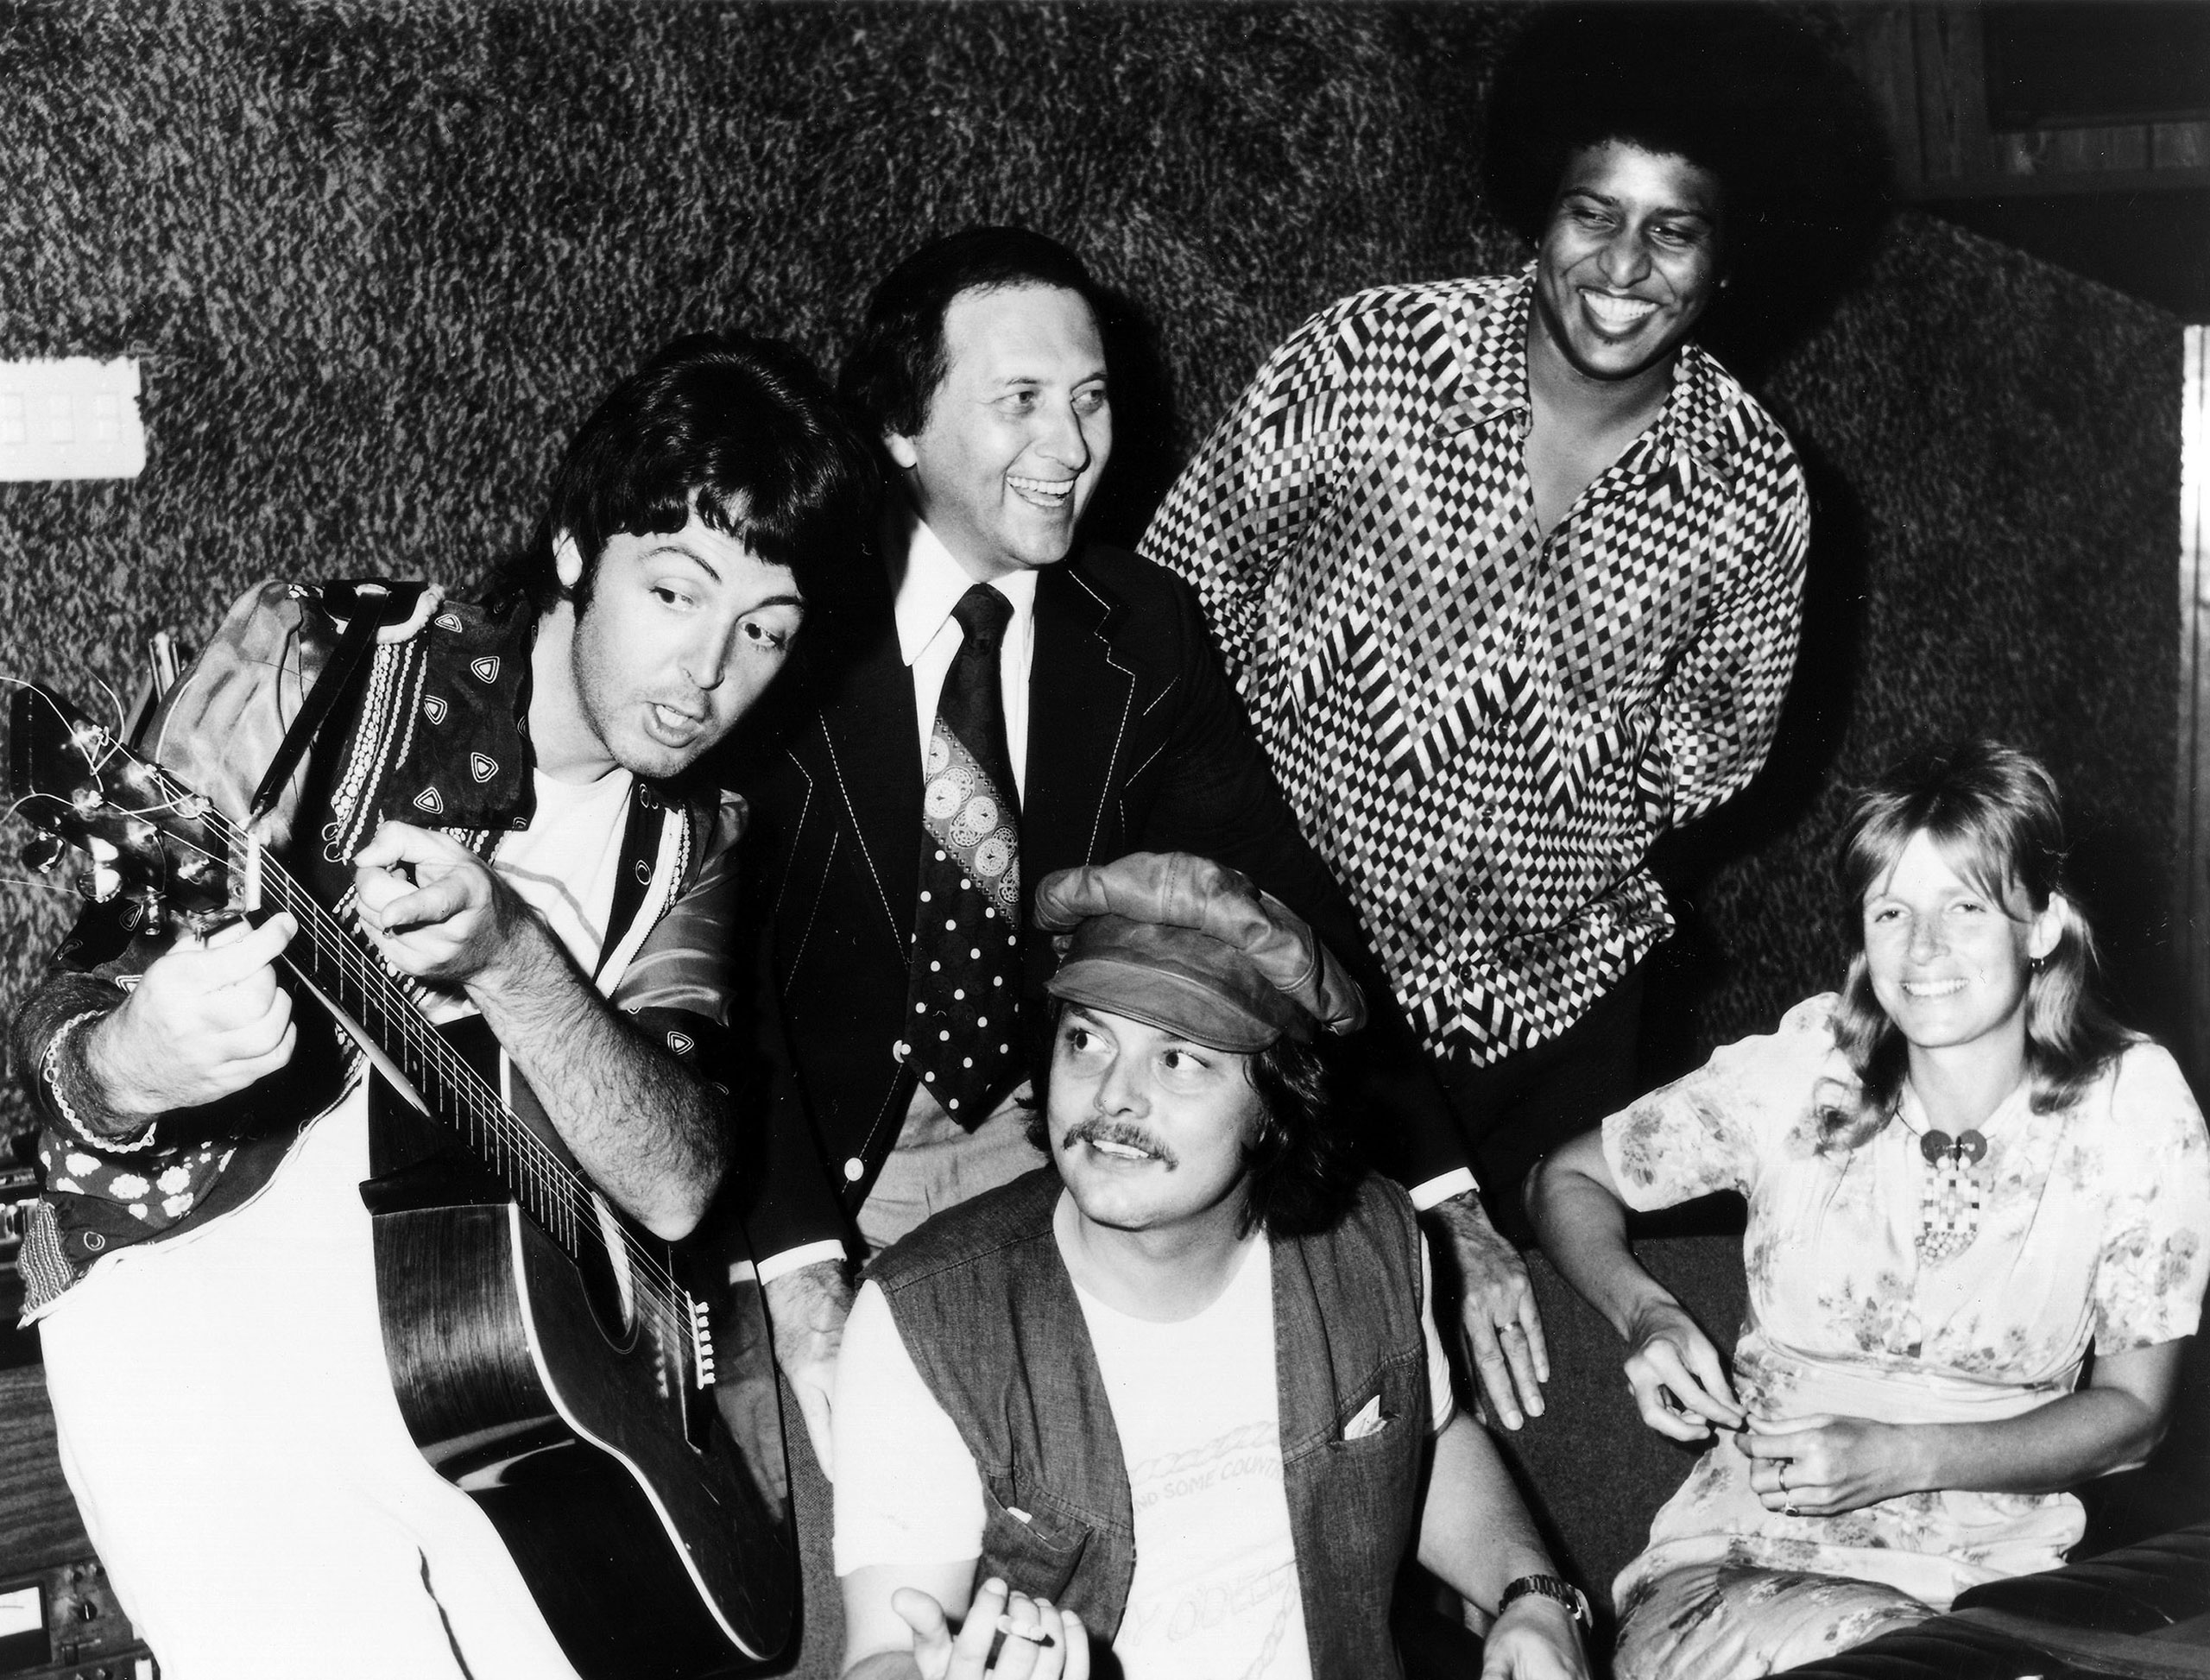 Pictured recording at Soundshop in 1974 are (l-r): Paul McCartney, Buddy Killen, Ernie Winfrey (seated), Tony Dorsey, and Linda McCartney (seated).